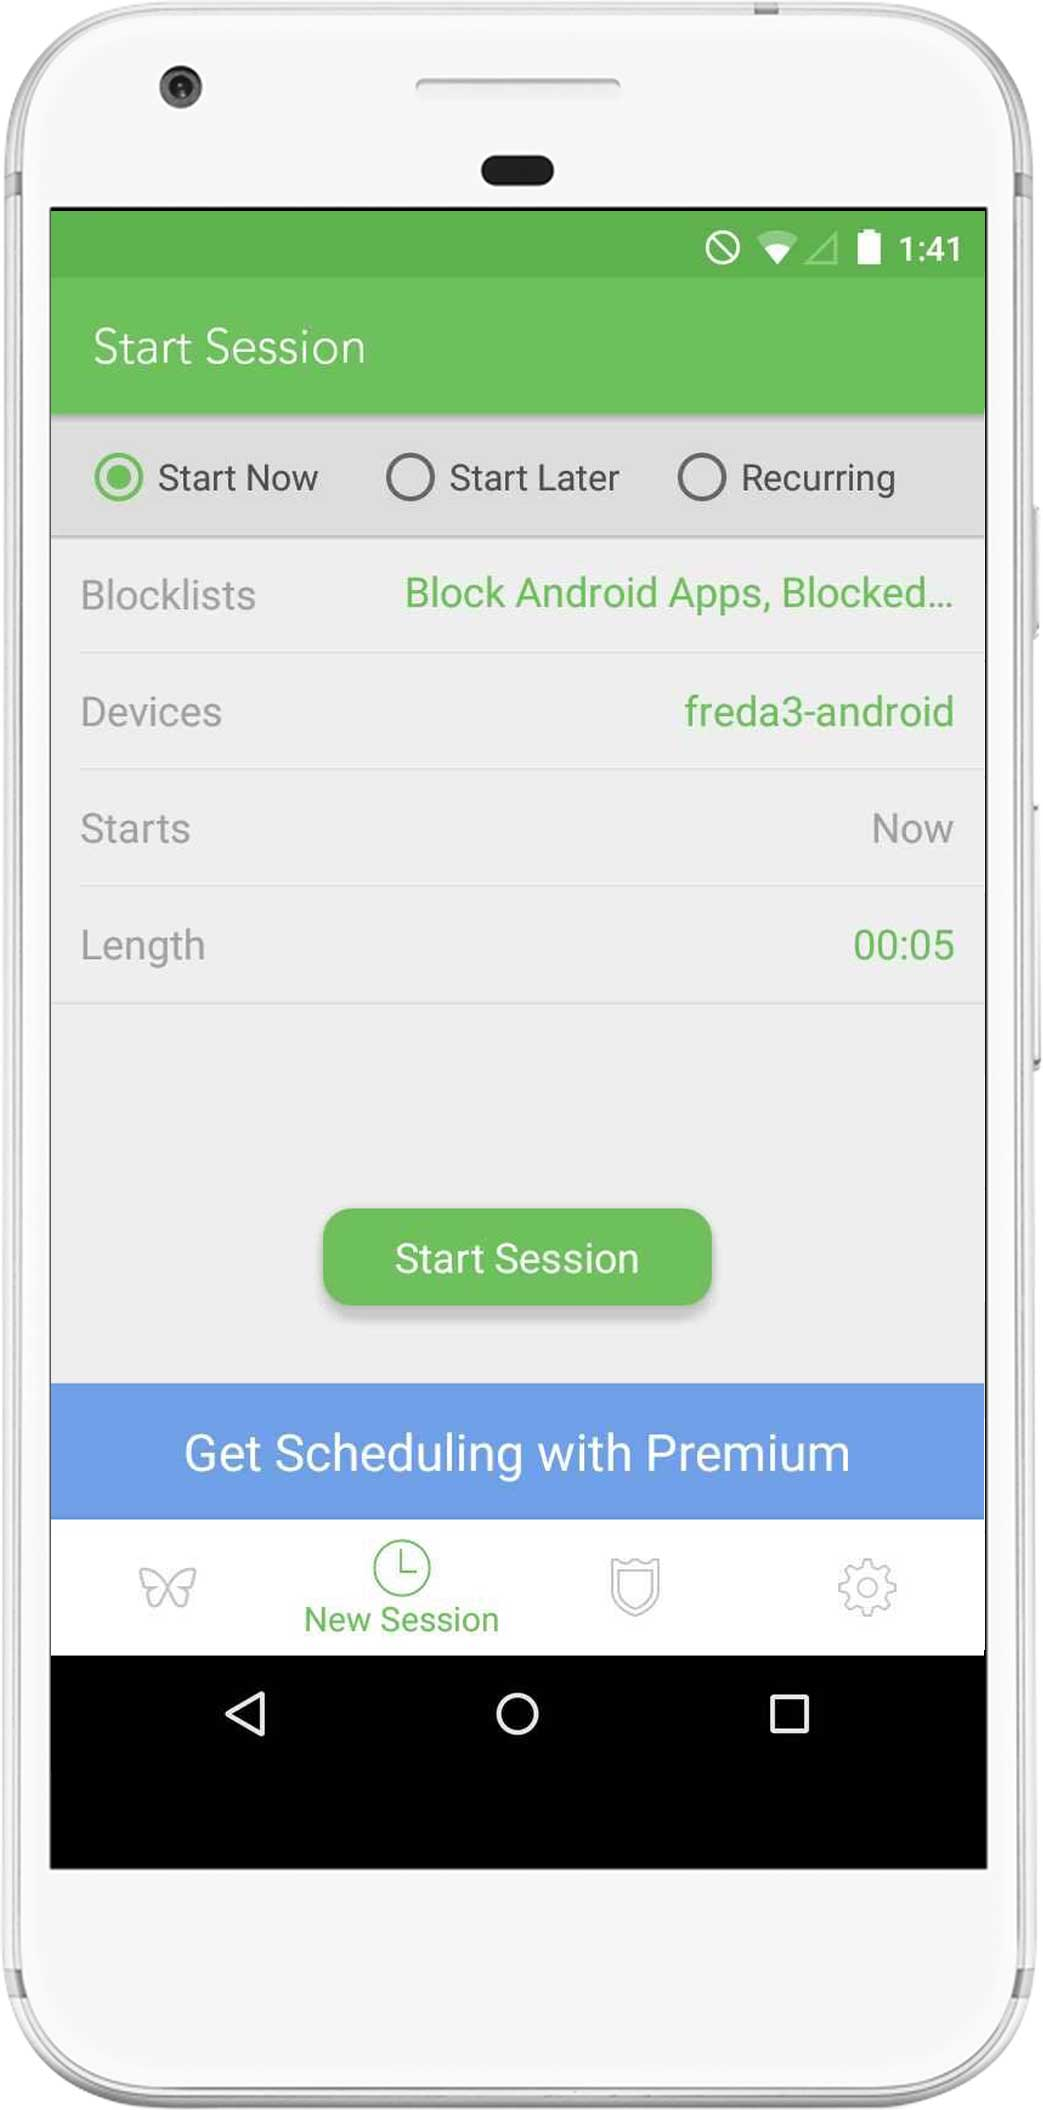 A screenshot showing the interface for starting a session, with controls to select the blocklists, devices, and duration for the session.